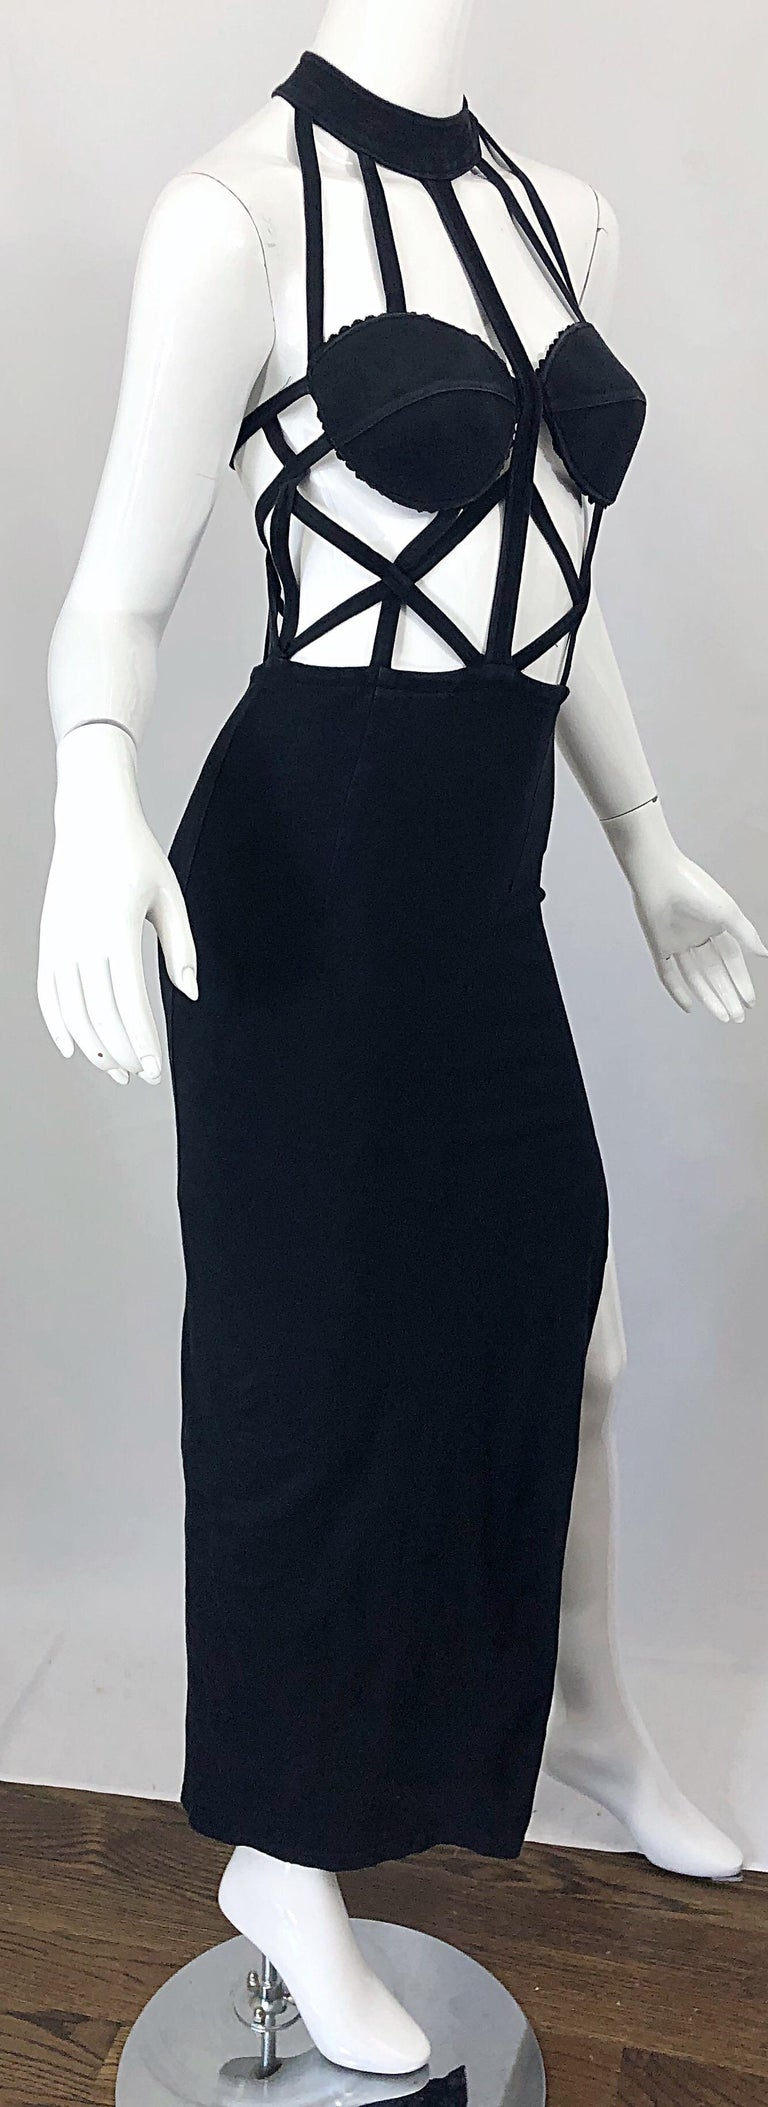 1990s Black Caged Bodycon Sexy Cotton Vintage Early 90s Cut - Out Gown Dress For Sale 1